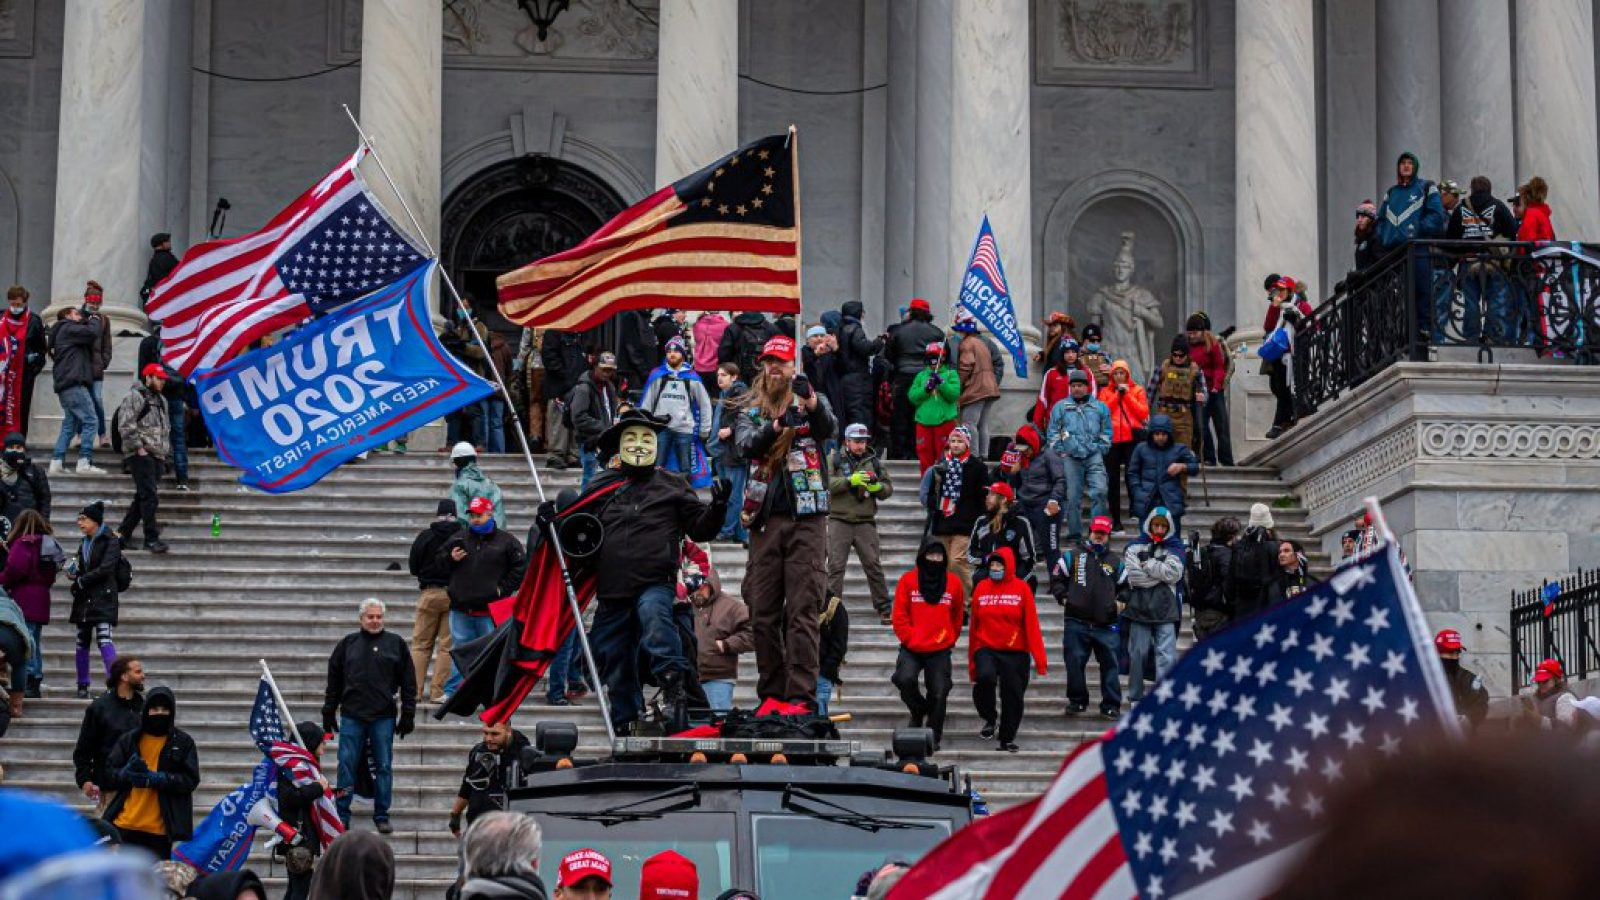 A large crowd of rioters carrying American flags and Trump 2020 flags stand on the U.S. Capitol steps